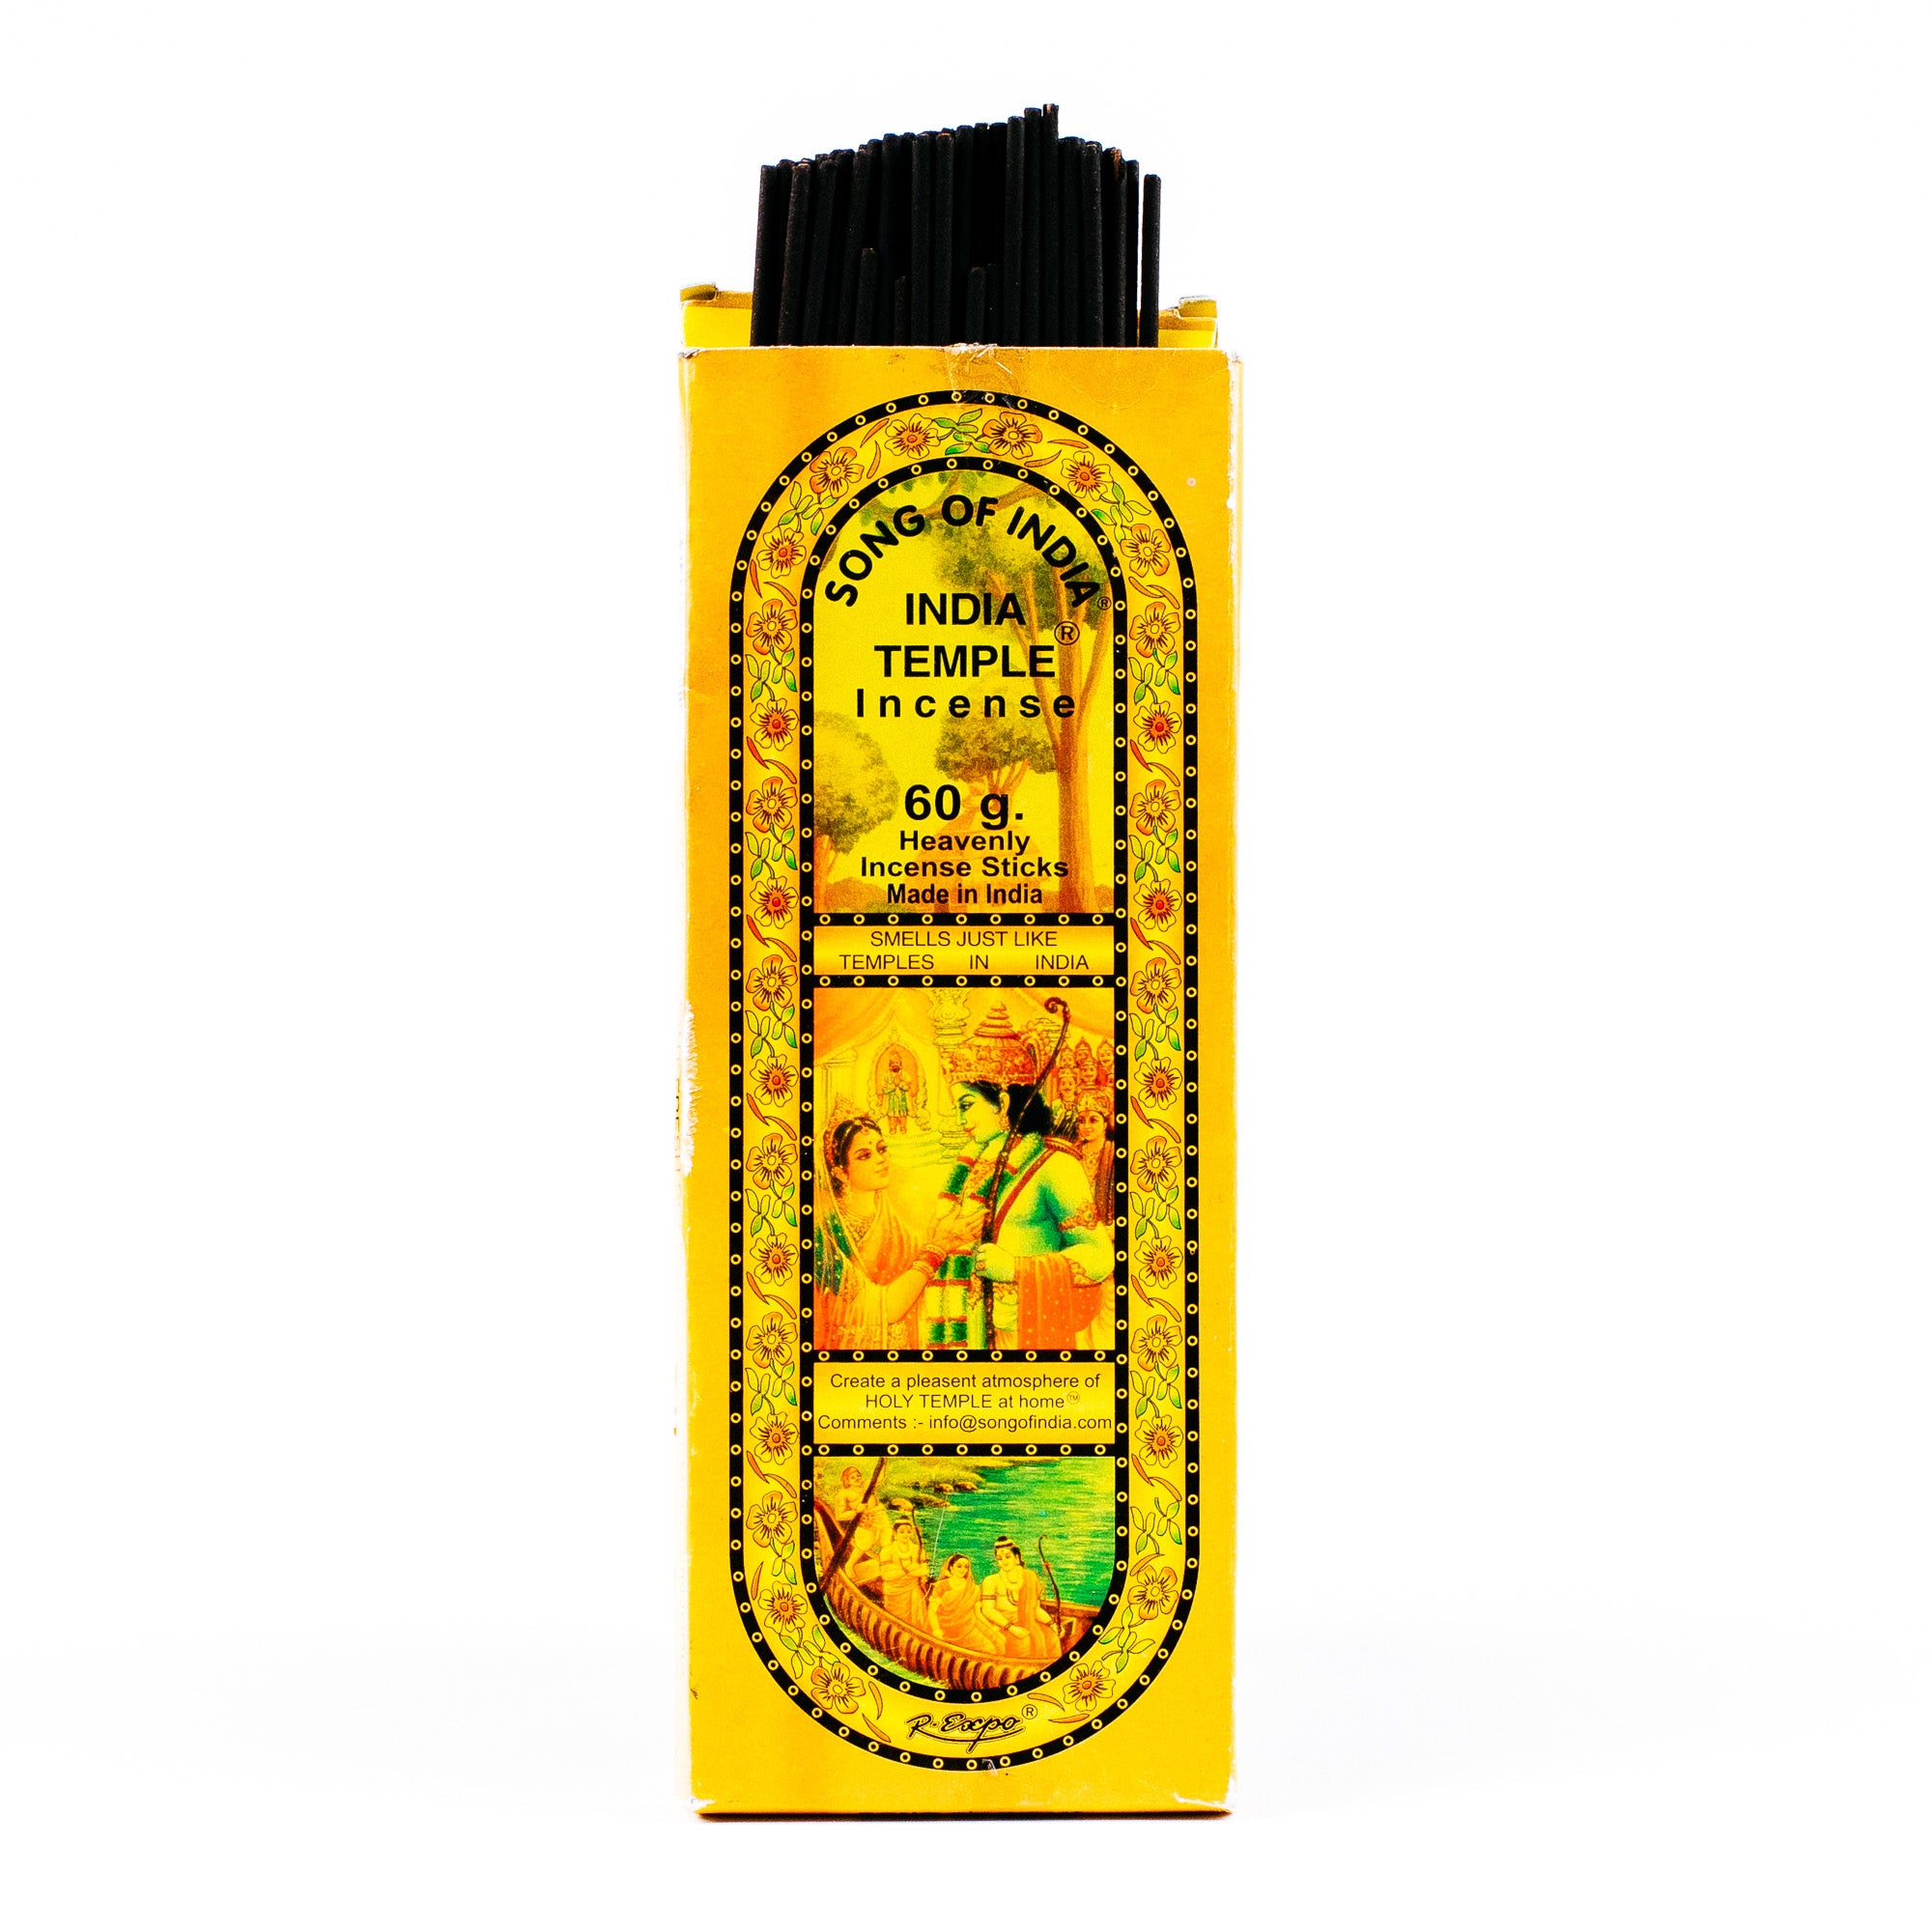 India Temple Incense - Song of India - 120 Stick Box